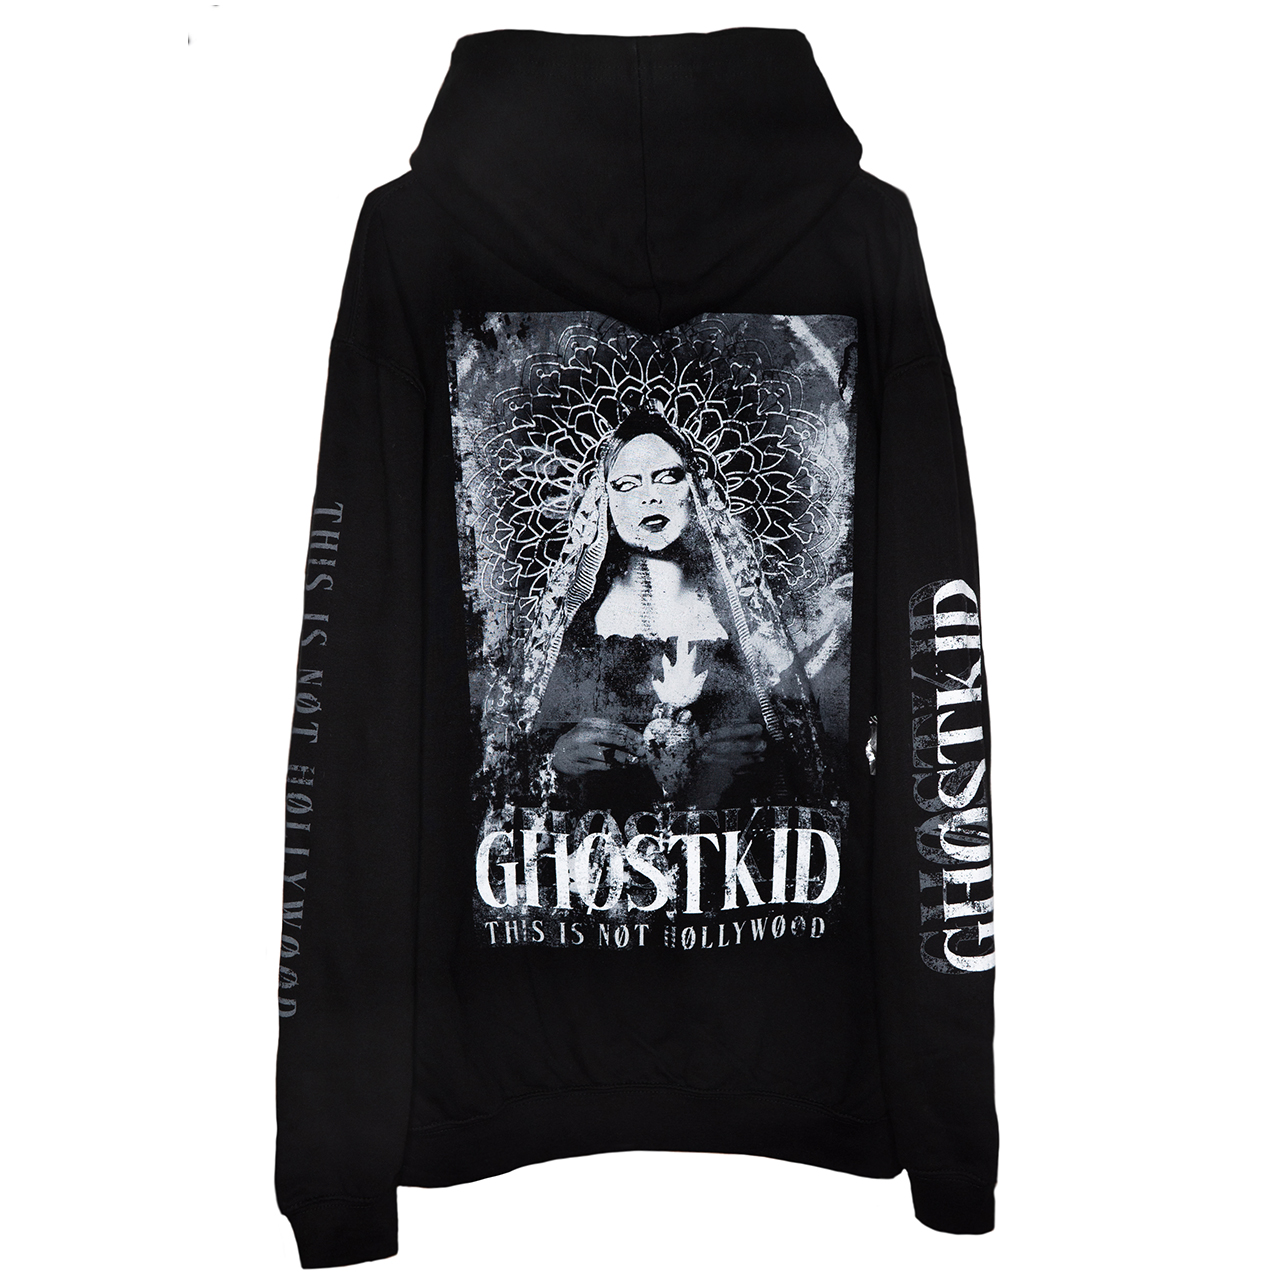 GHOSTKID Ghøstkid - This is not Hollywood Hoodie Hoodie